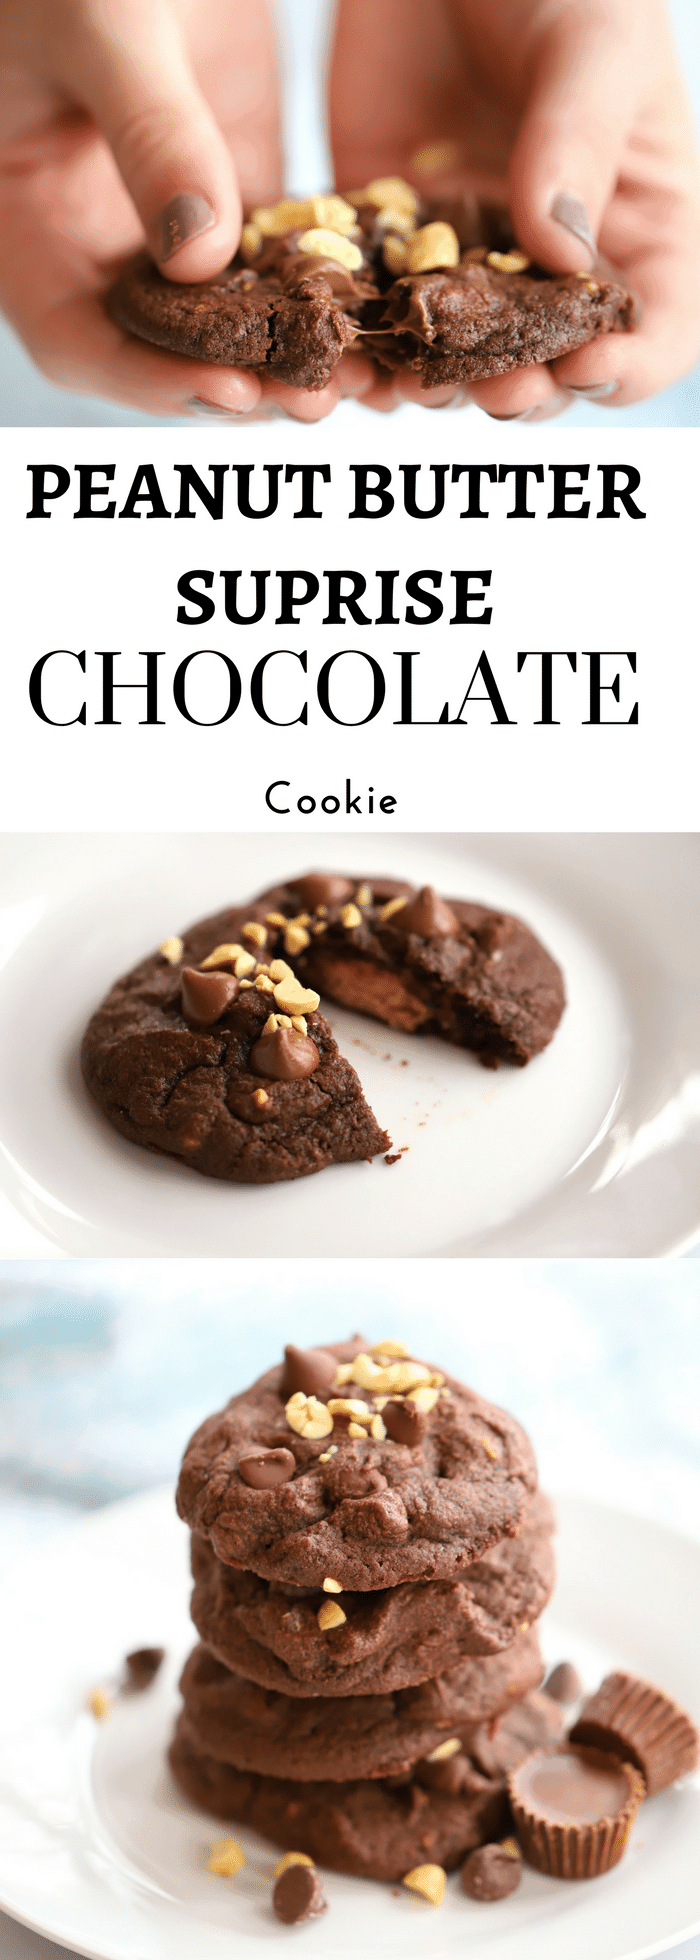 A Peanut Butter Cup inside a chocolaty chocolate chip cookie, ooey gooey goodness | Thecarfreekitchen.com